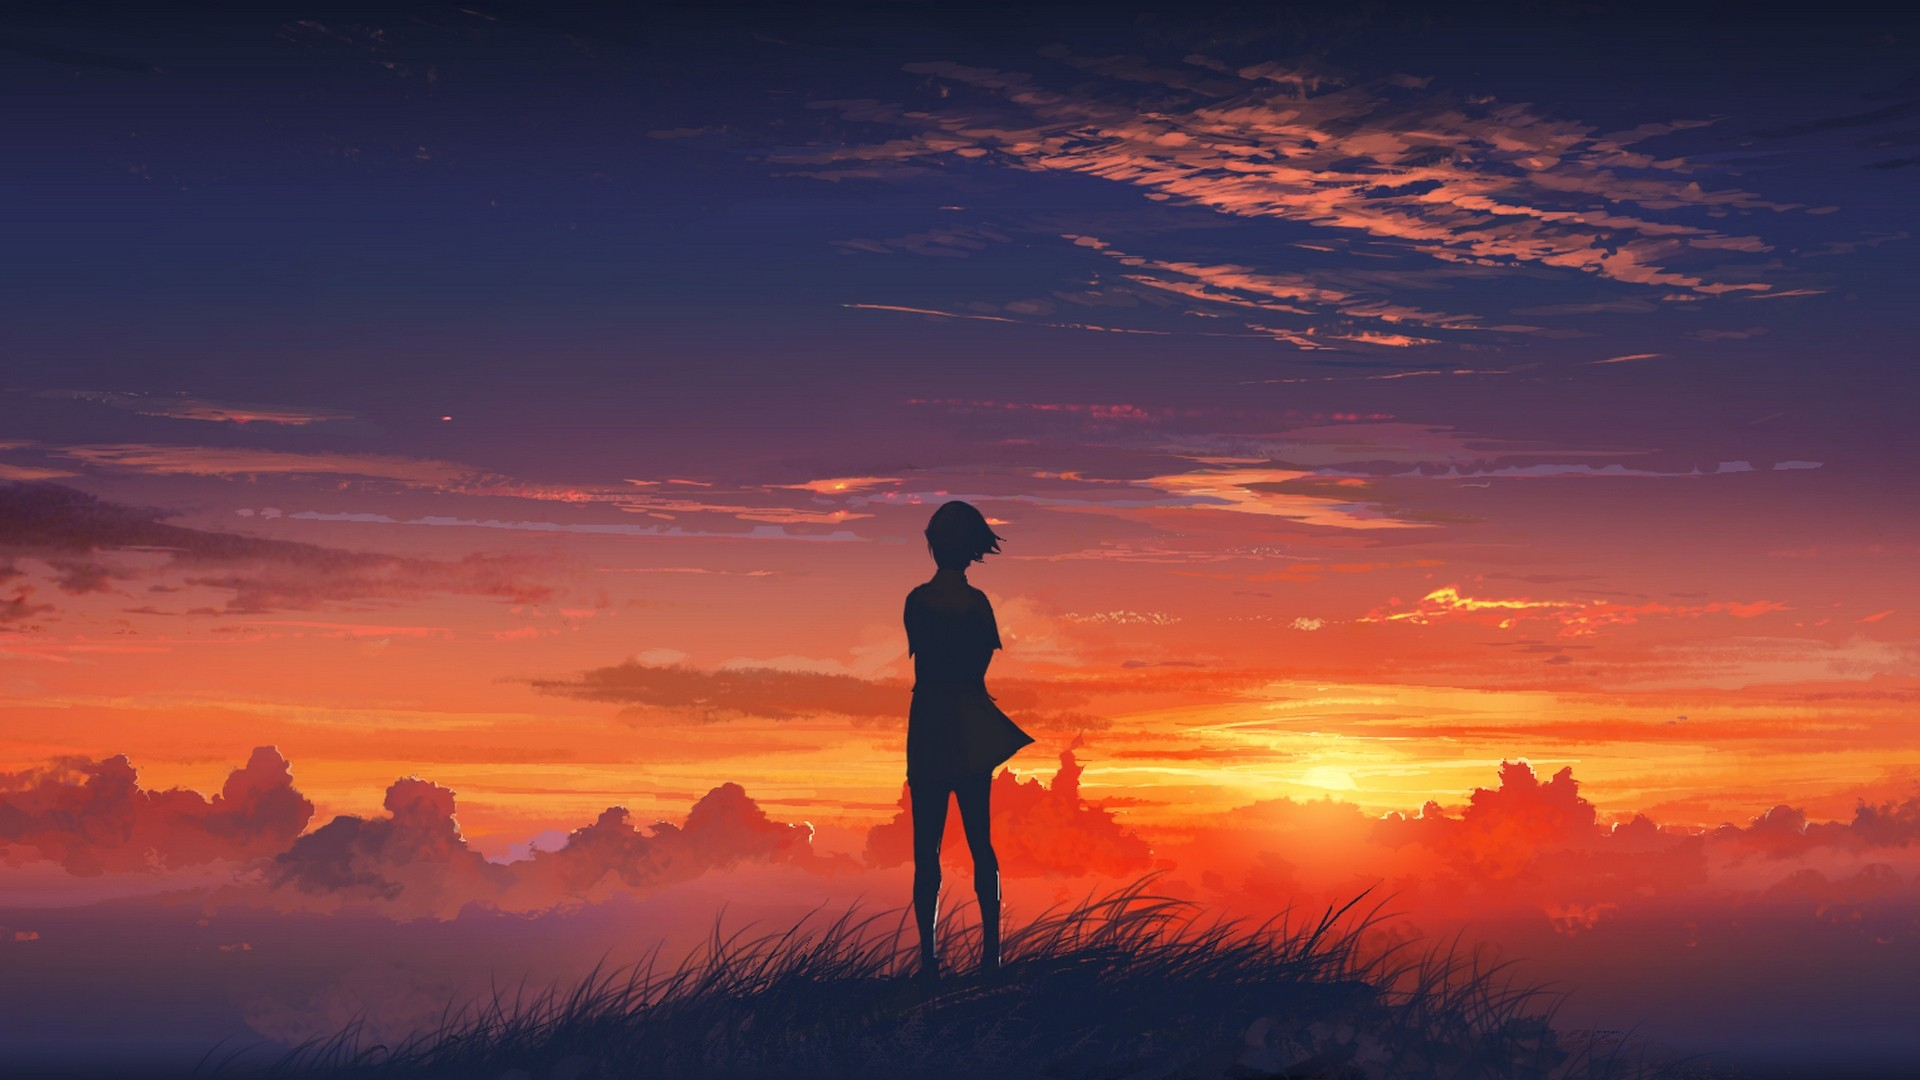 Sunset View Anime Cool Windows 1920x1080   The Wallpaper 1920x1080